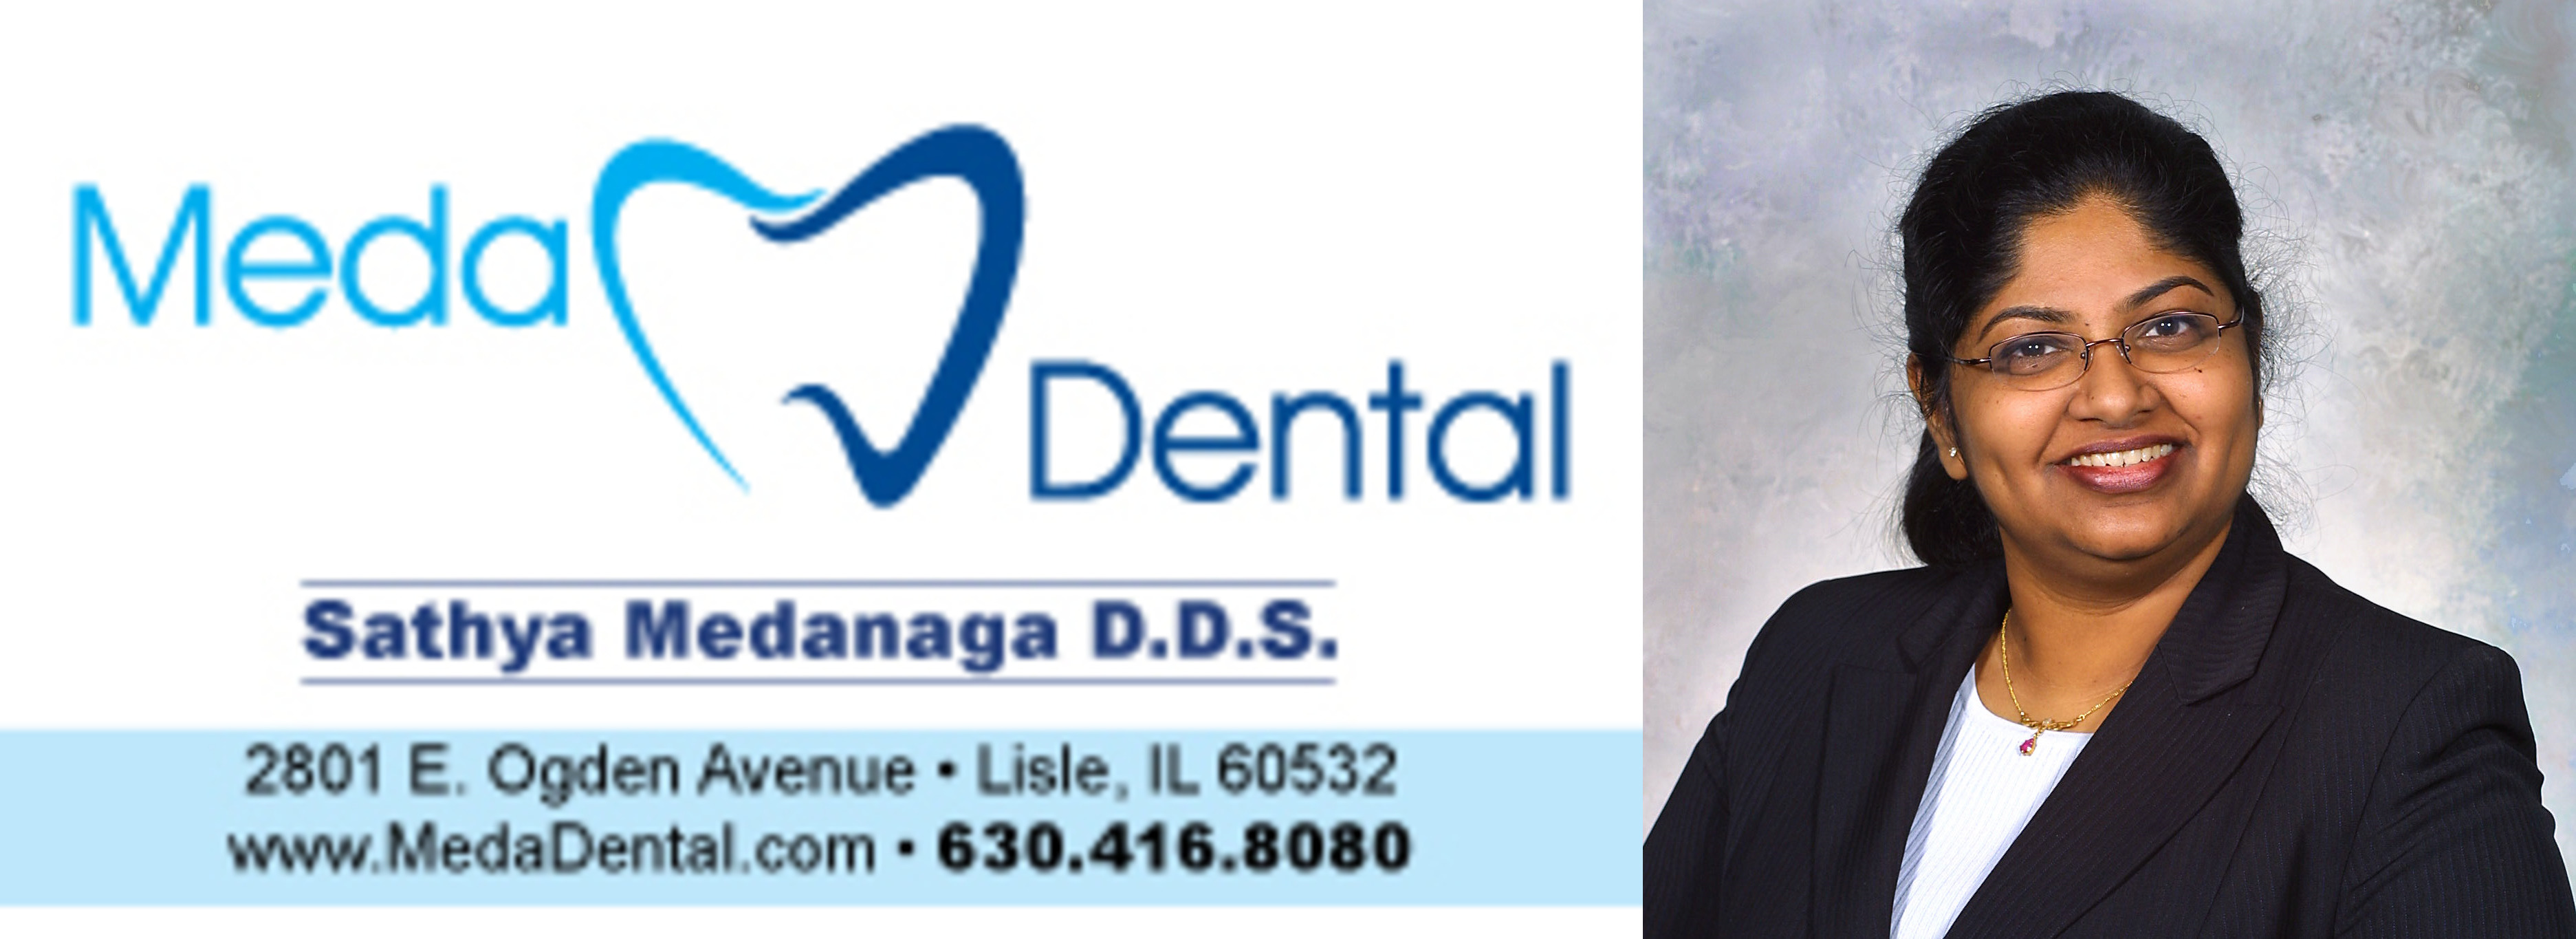 Meda Dental